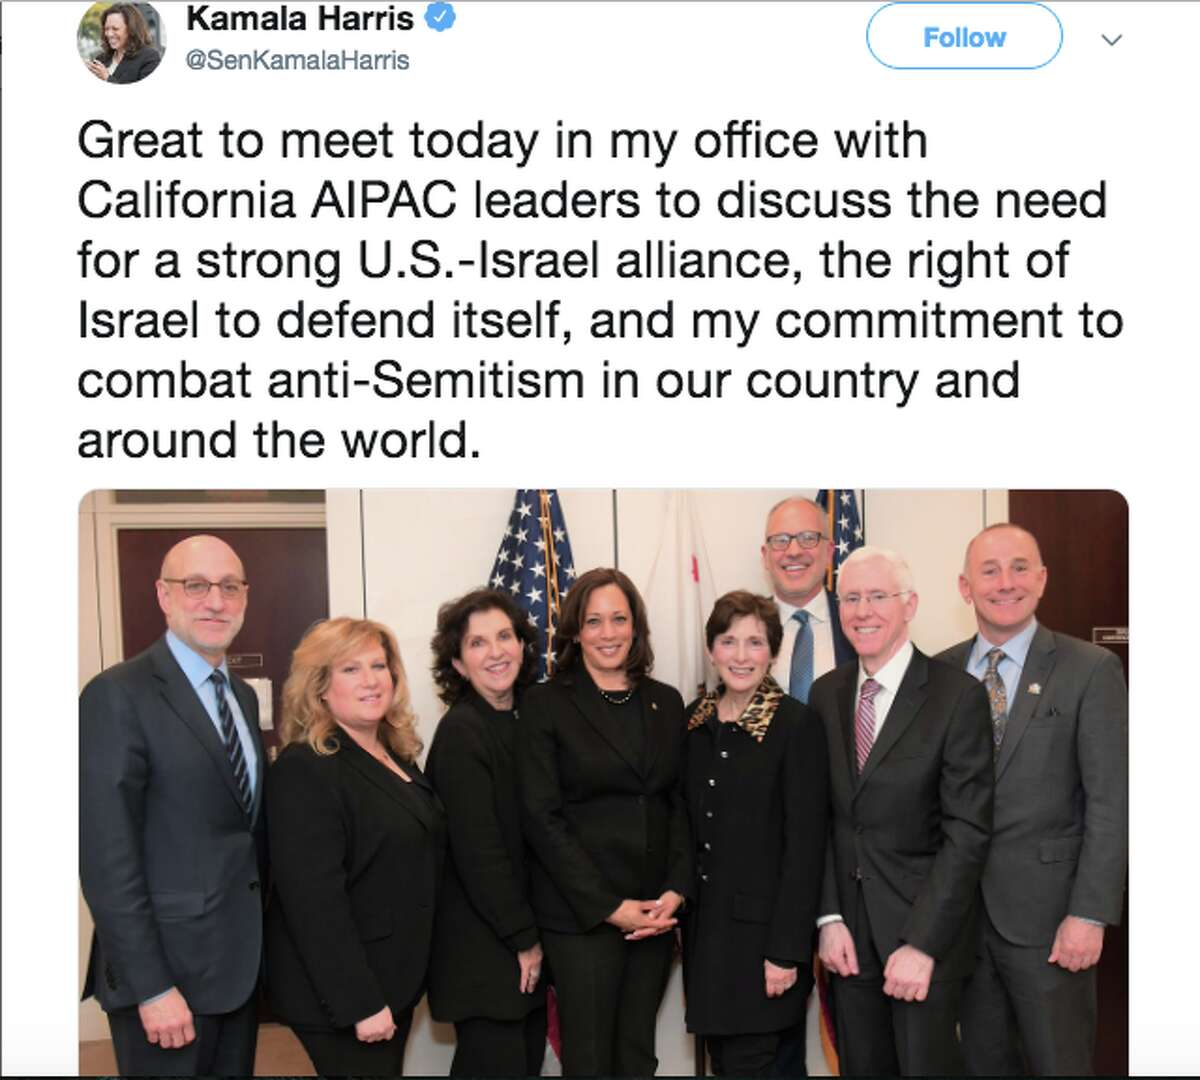 Kamala Harris drew fire from progressives after meeting with California AIPAC leaders in her Senate office. Click ahead to see reactions.